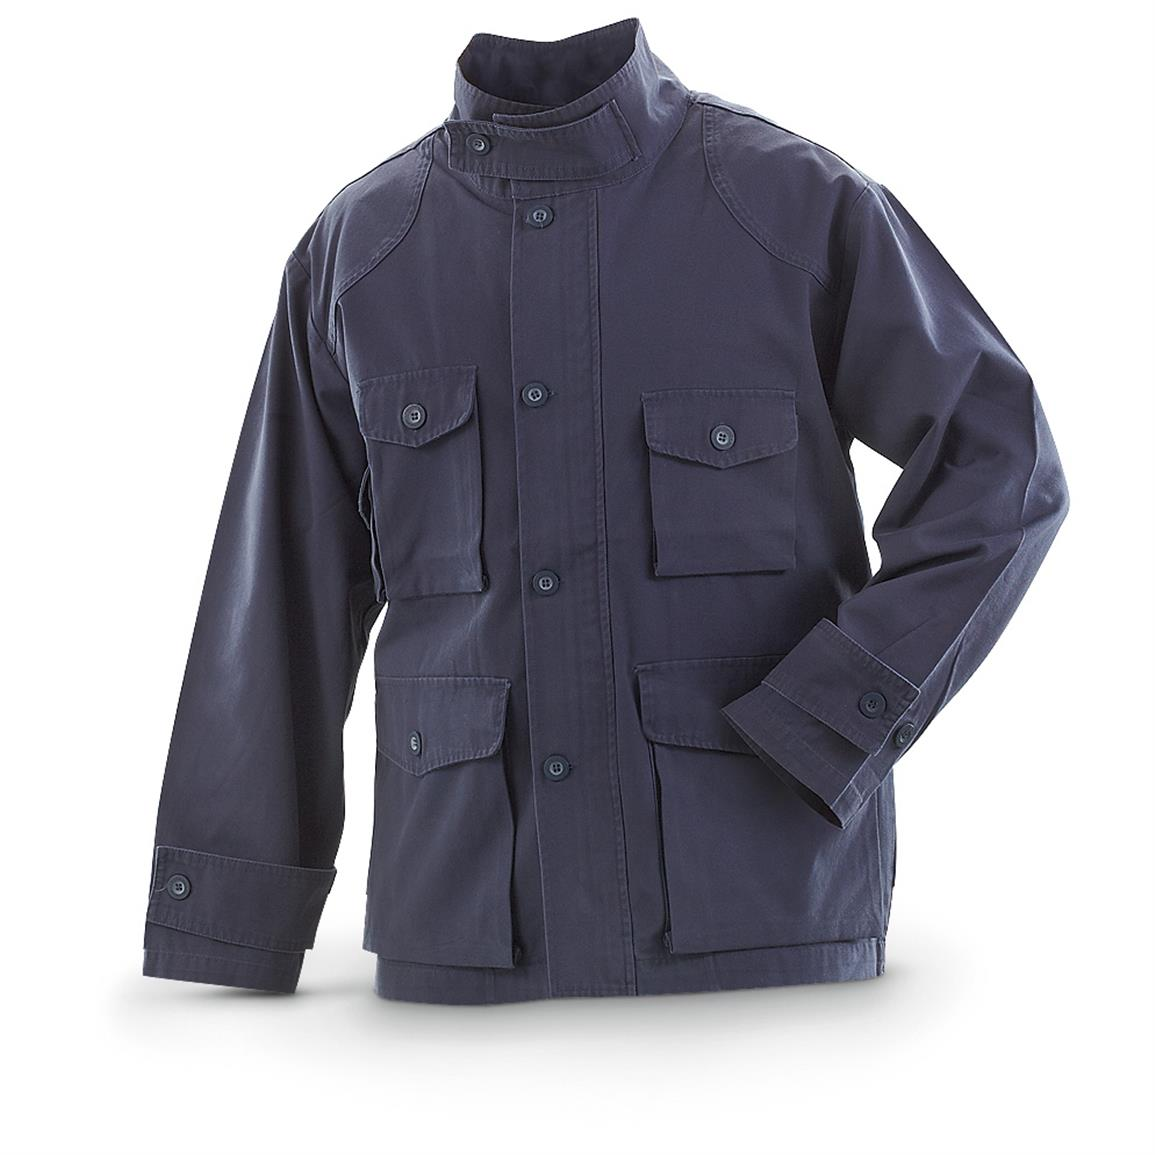 Men's Military-style Shooters Jacket, Navy